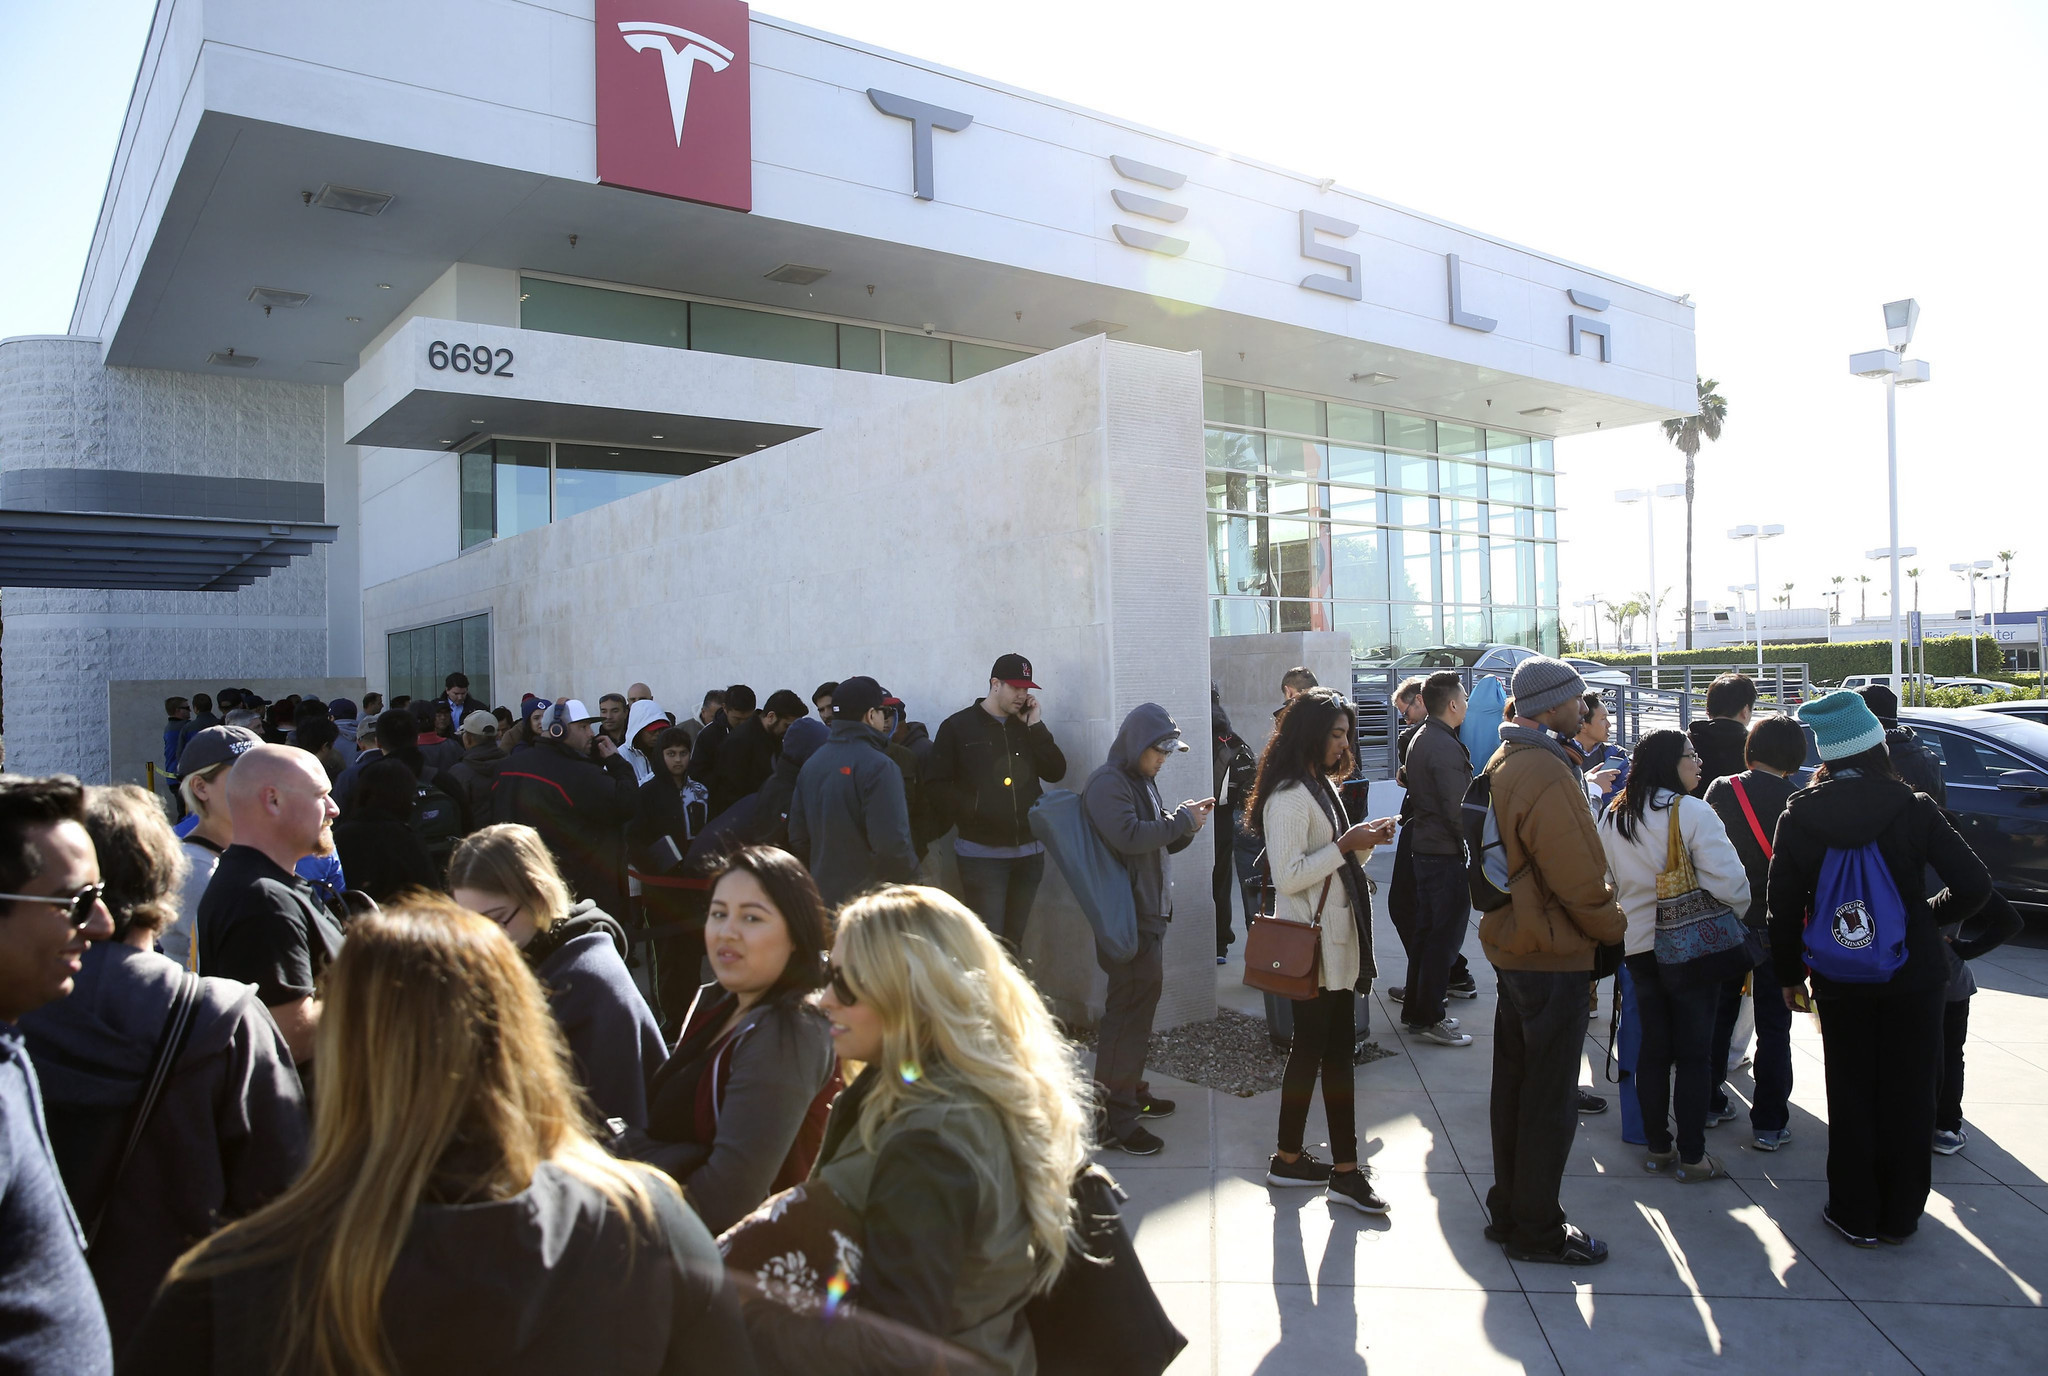 tesla model 3 why it 39 s important and what we know baltimore sun. Black Bedroom Furniture Sets. Home Design Ideas